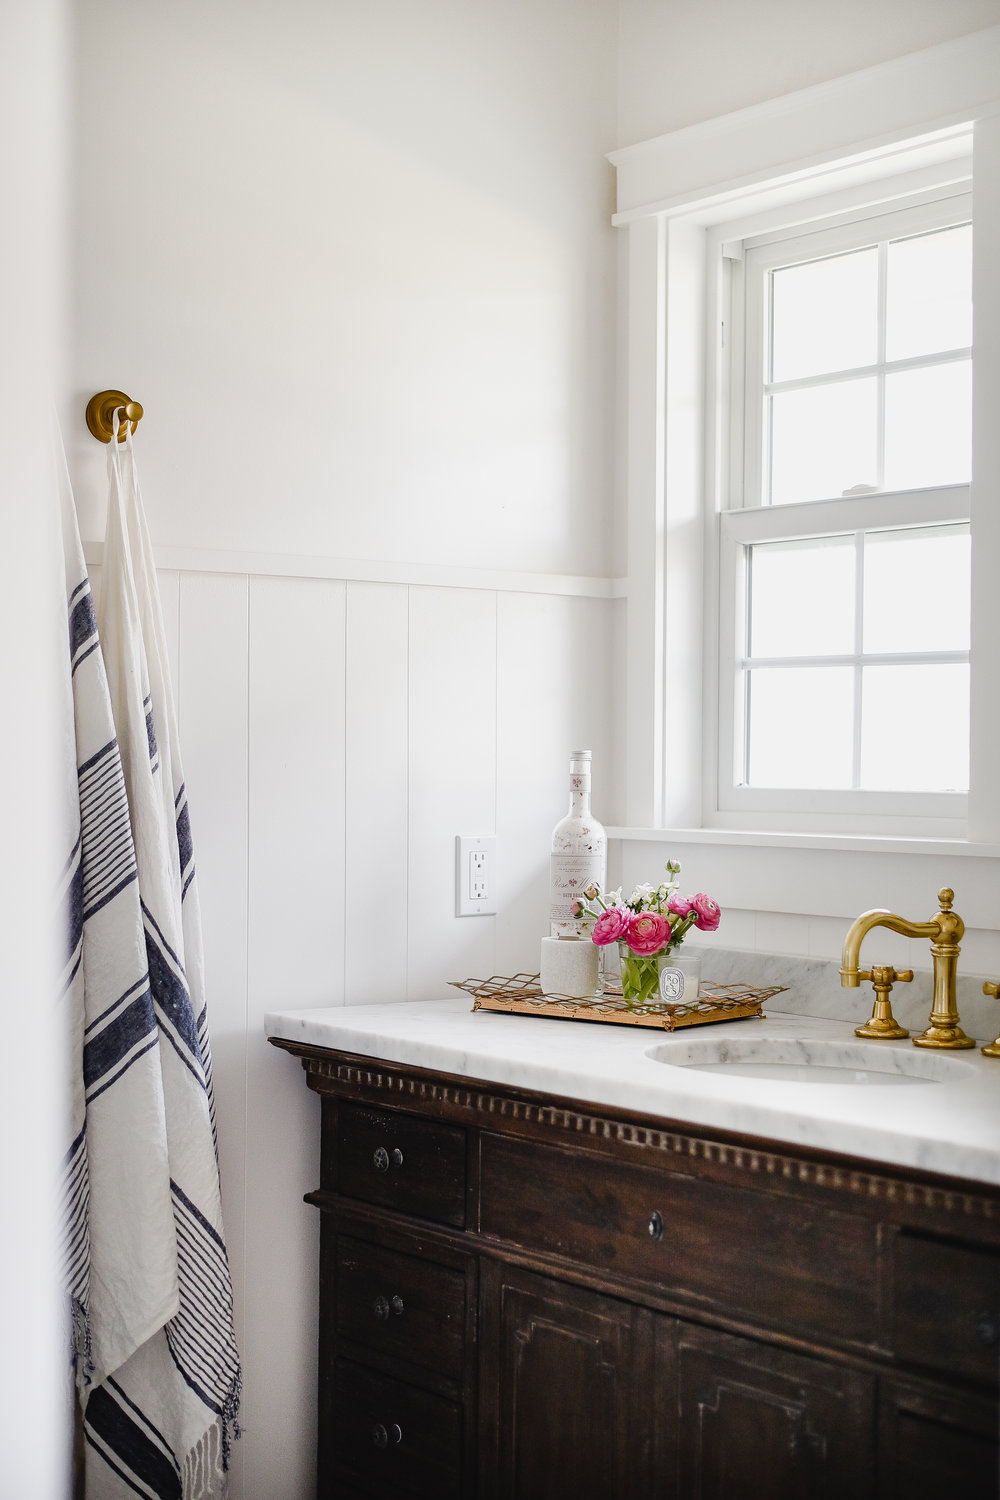 A Guest Bathroom Renovation: The Reveal